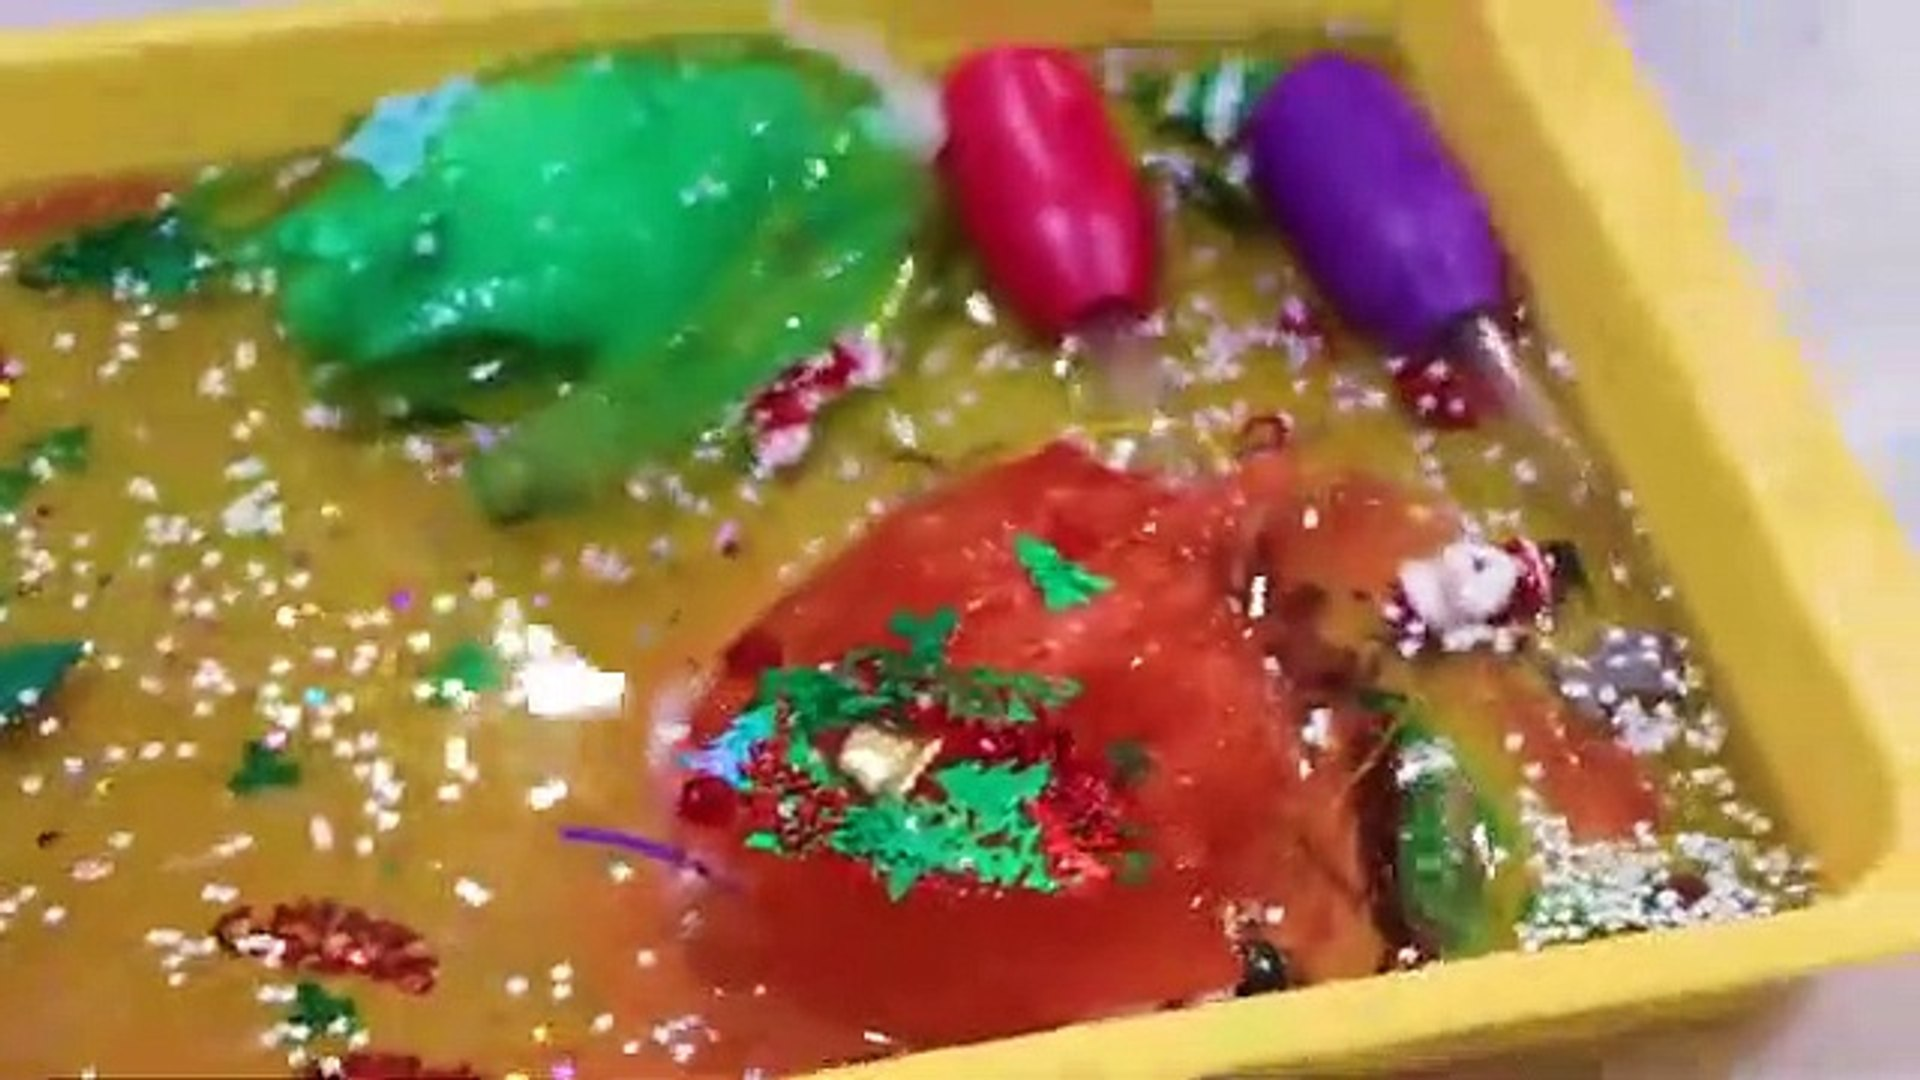 Ice Balloon Melting Animals Easy Science Experiments for kid and more kids activities